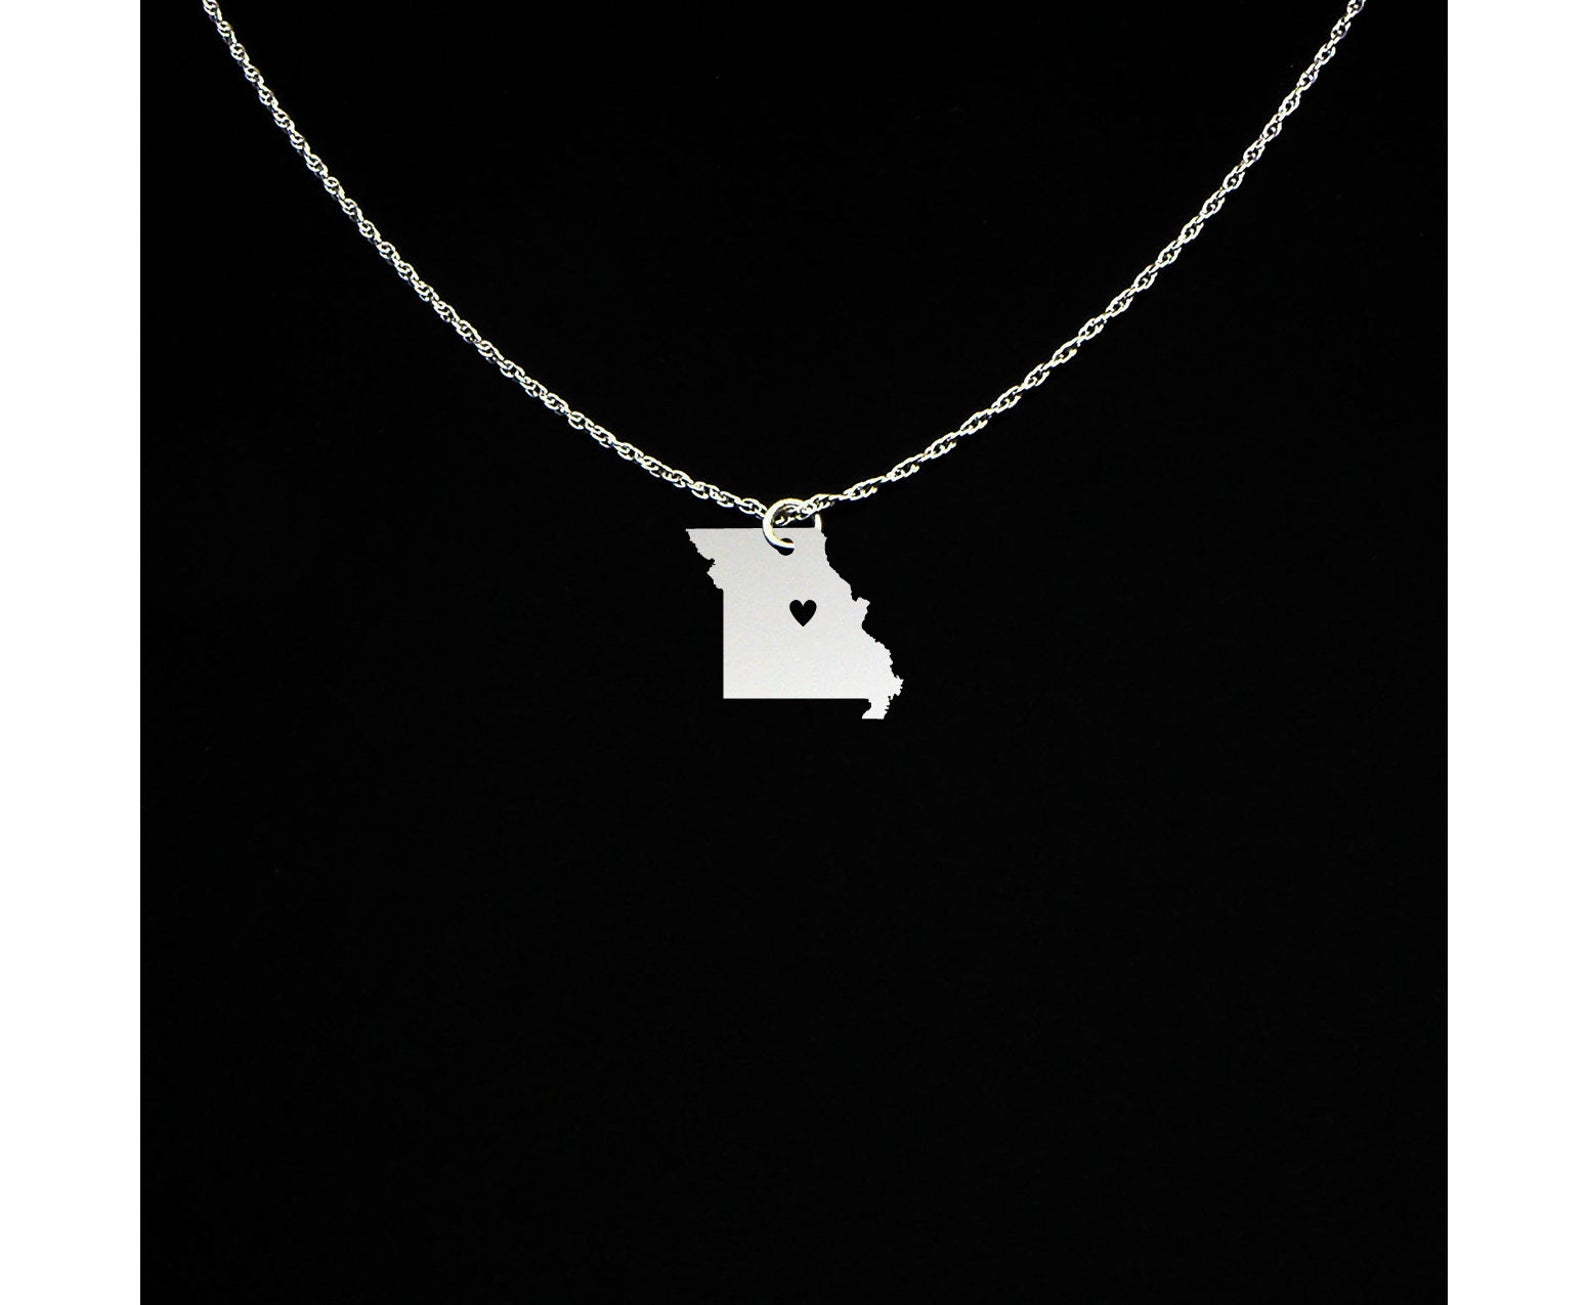 Missouri Necklace